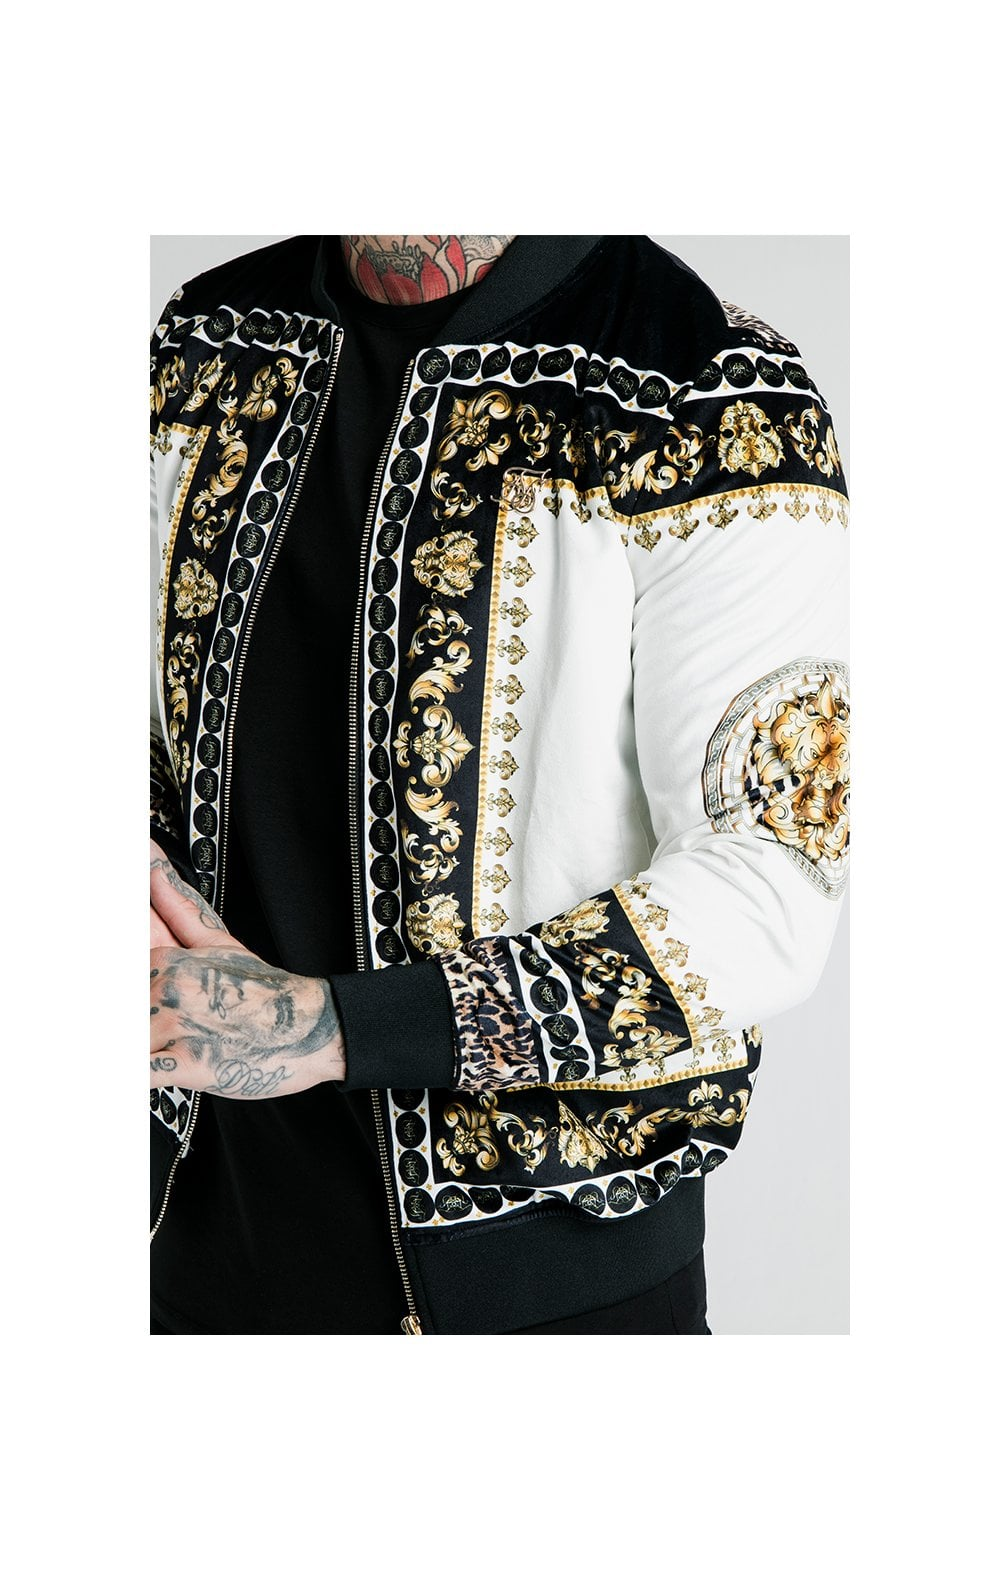 Load image into Gallery viewer, SikSilk x Dani Alves Bomber Jacket - Black, Off White & Gold (1)